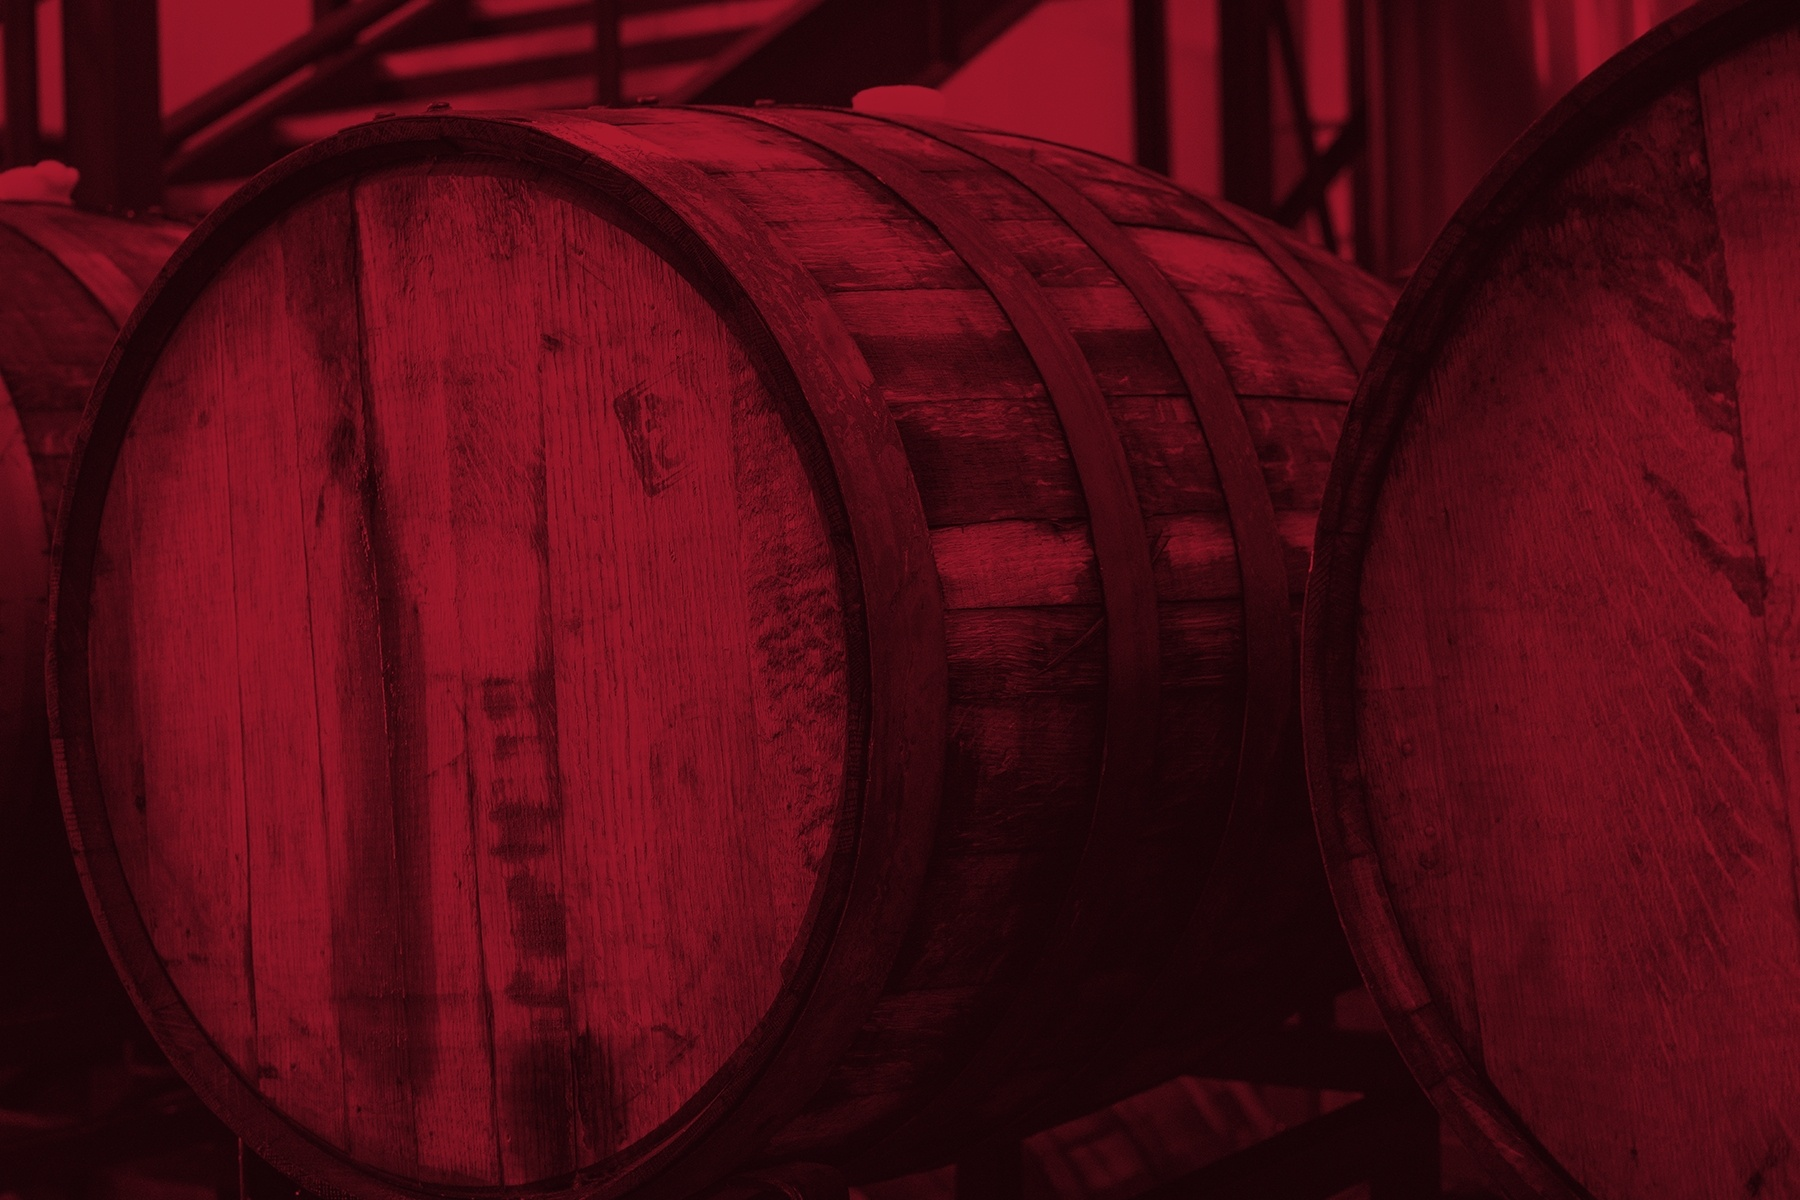 large wooden barrels used to store alcohol with red image overlay